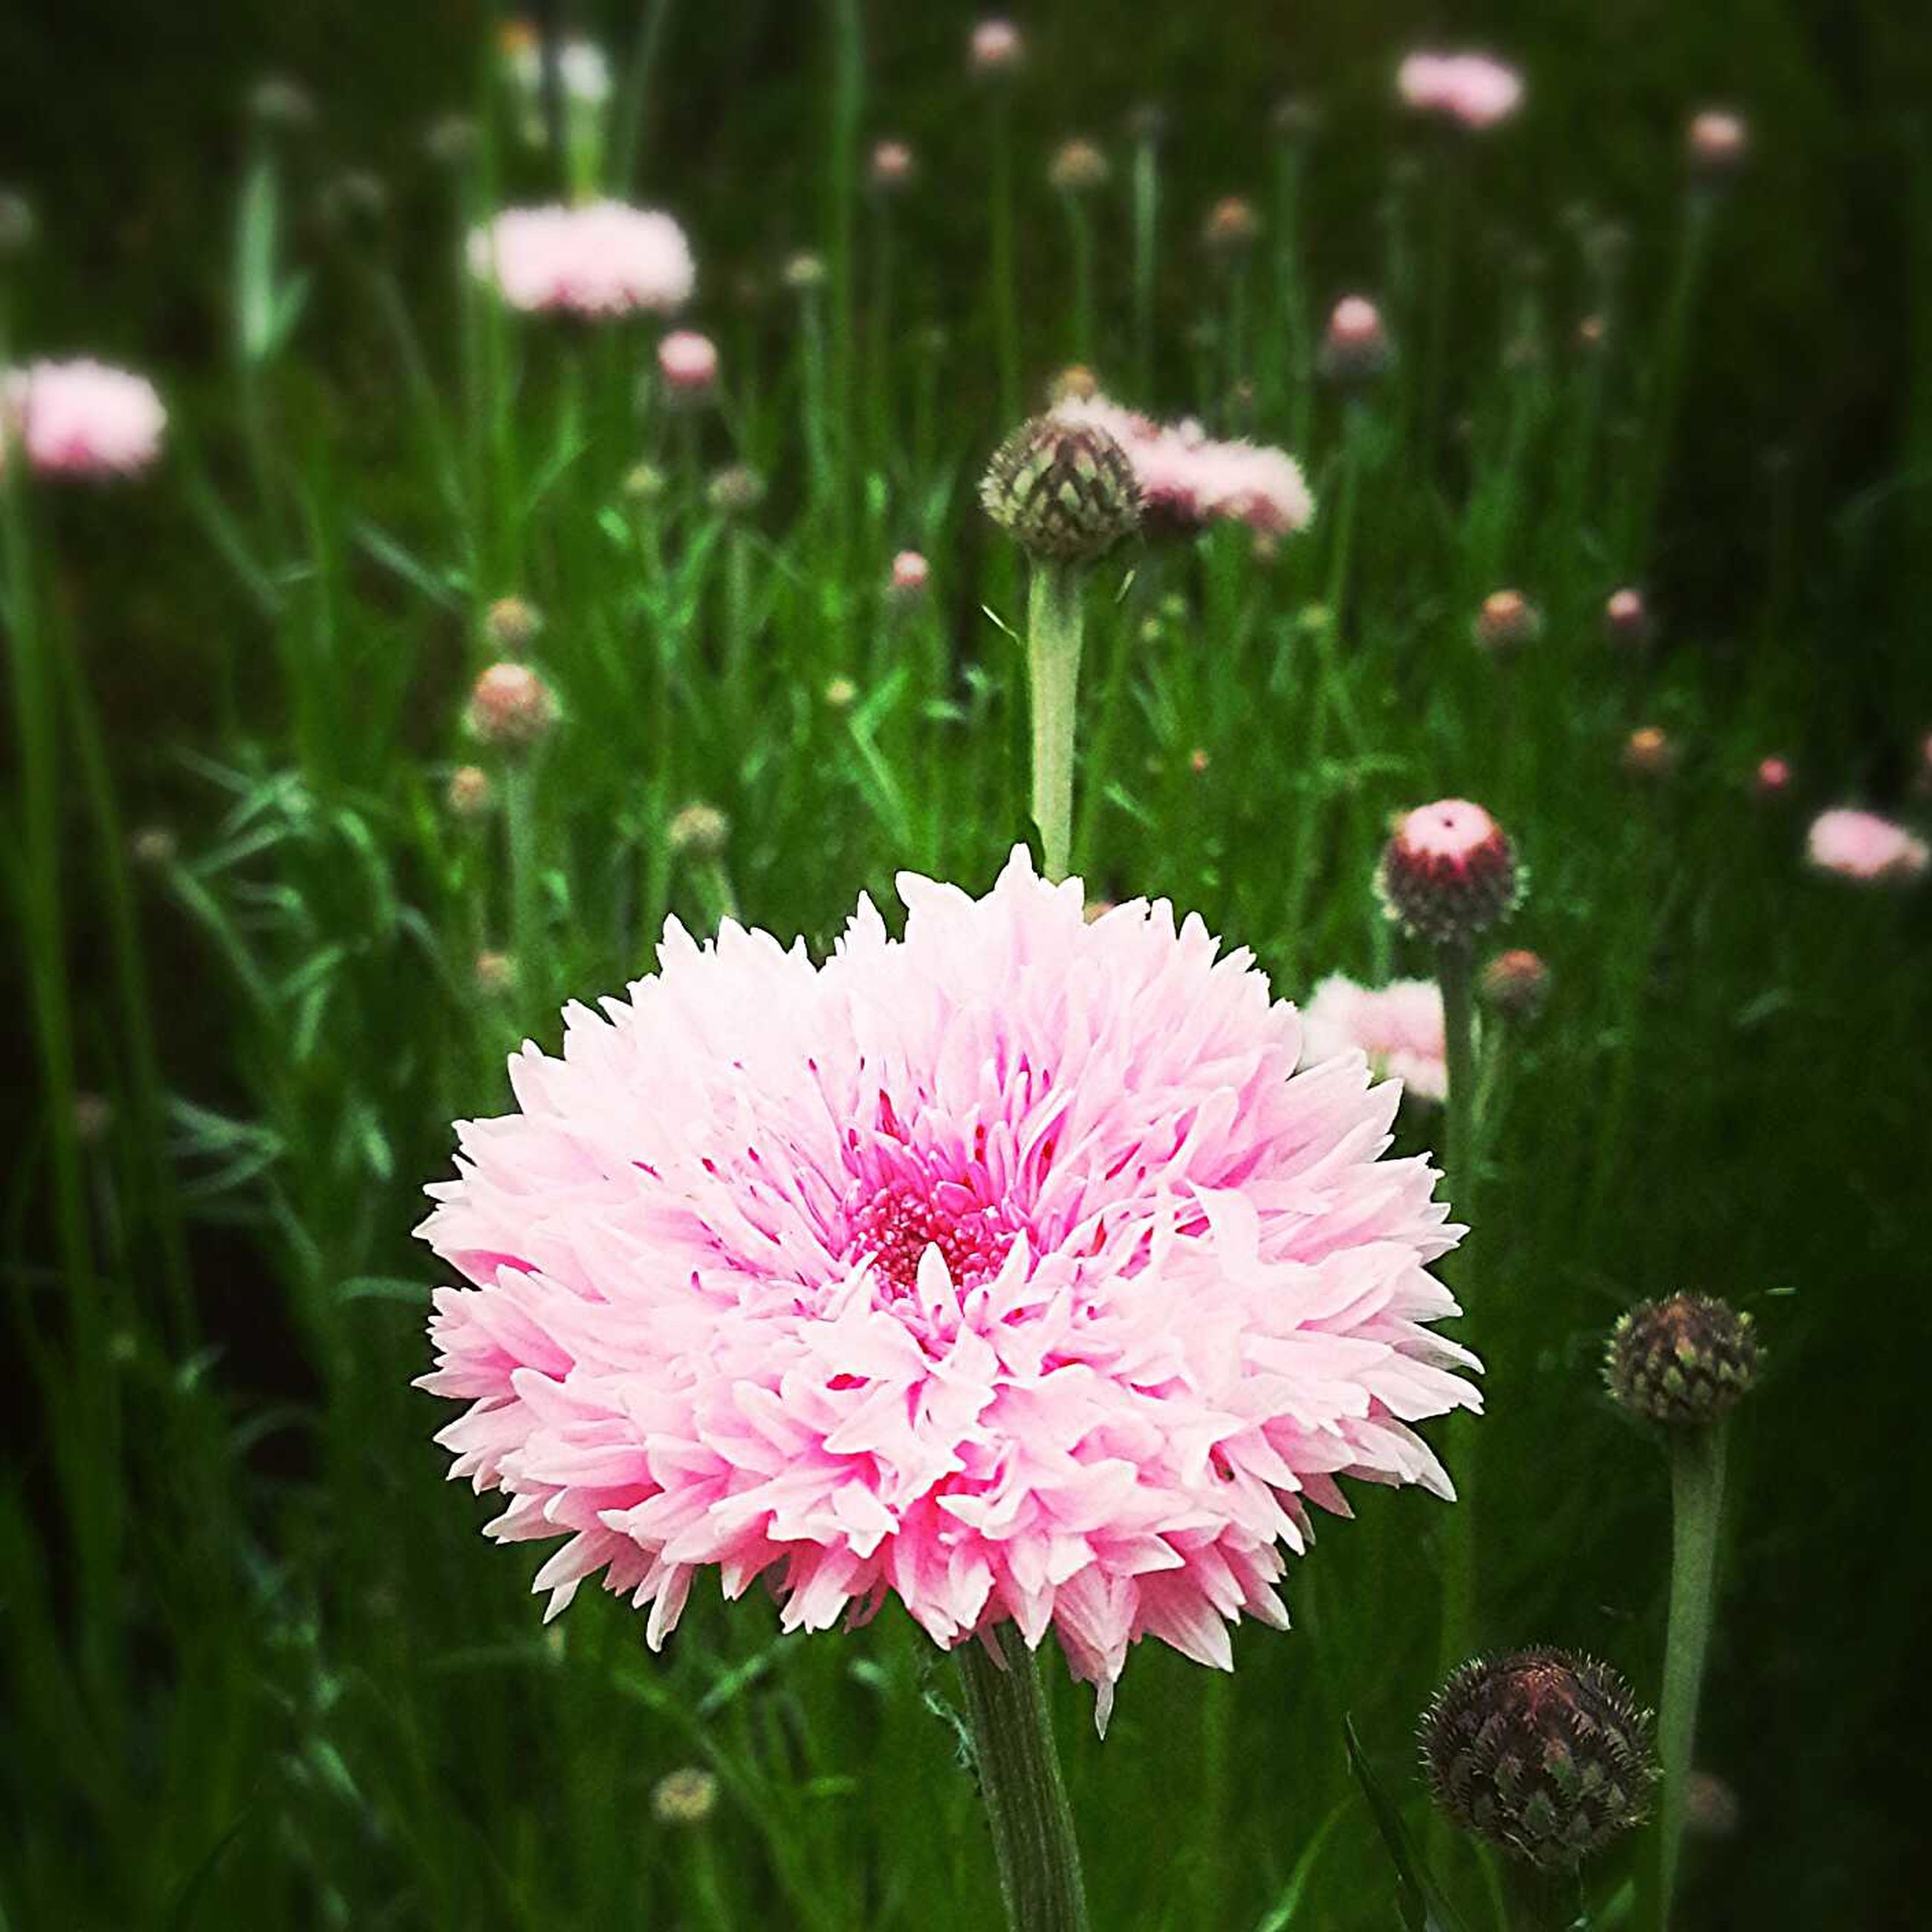 flower, freshness, fragility, growth, petal, flower head, beauty in nature, pink color, blooming, nature, plant, in bloom, focus on foreground, close-up, field, stem, green color, park - man made space, blossom, outdoors